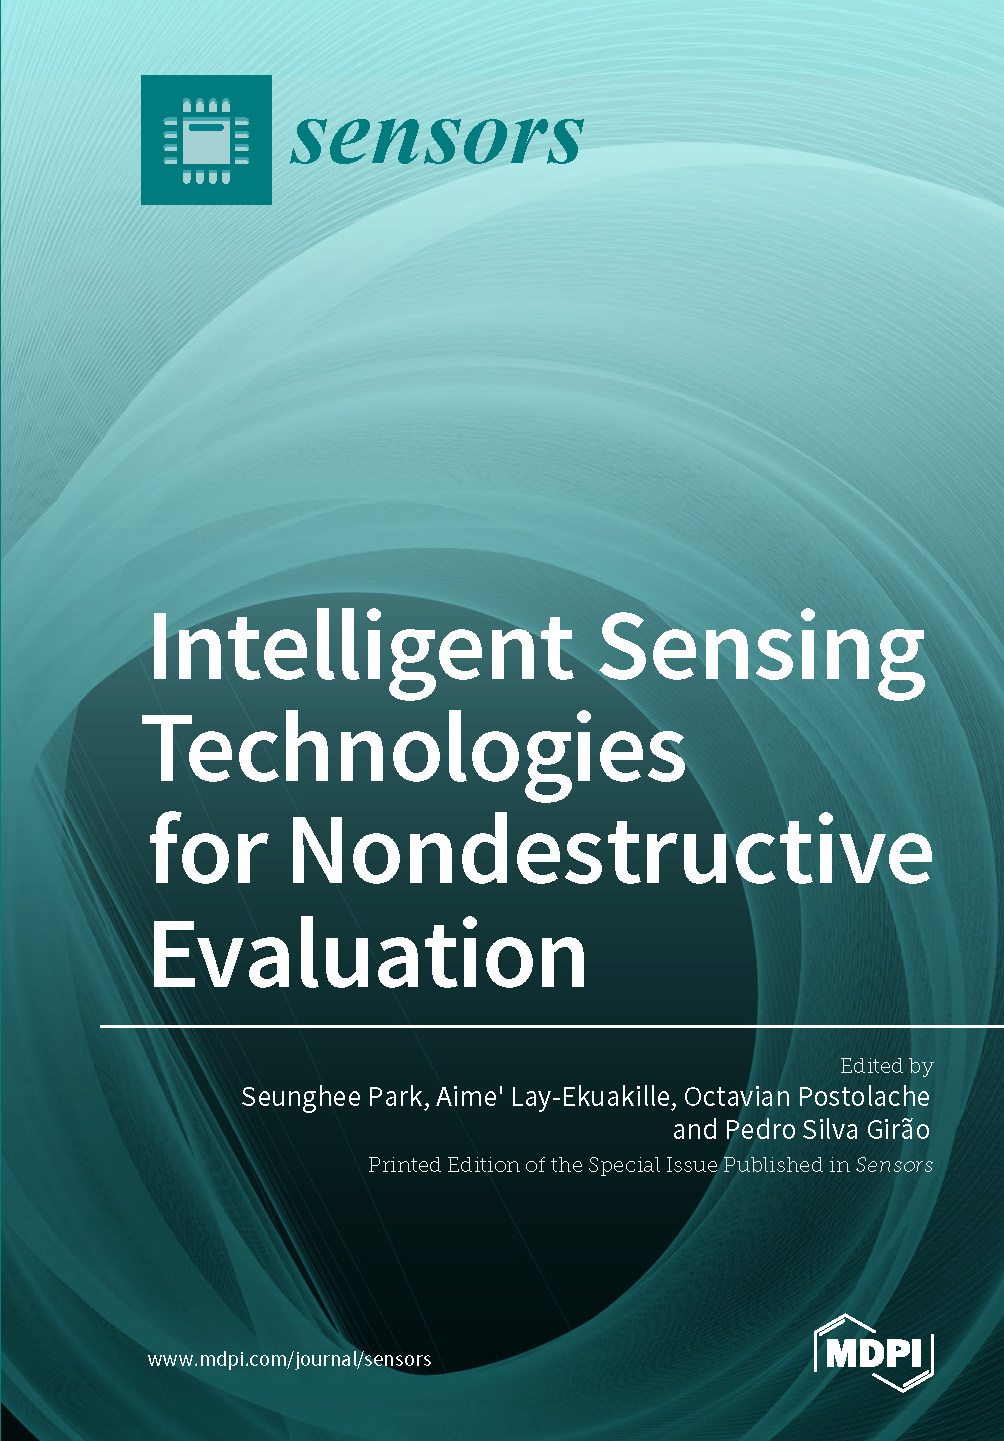 Intelligent Sensing Technologies for Nondestructive Evaluation